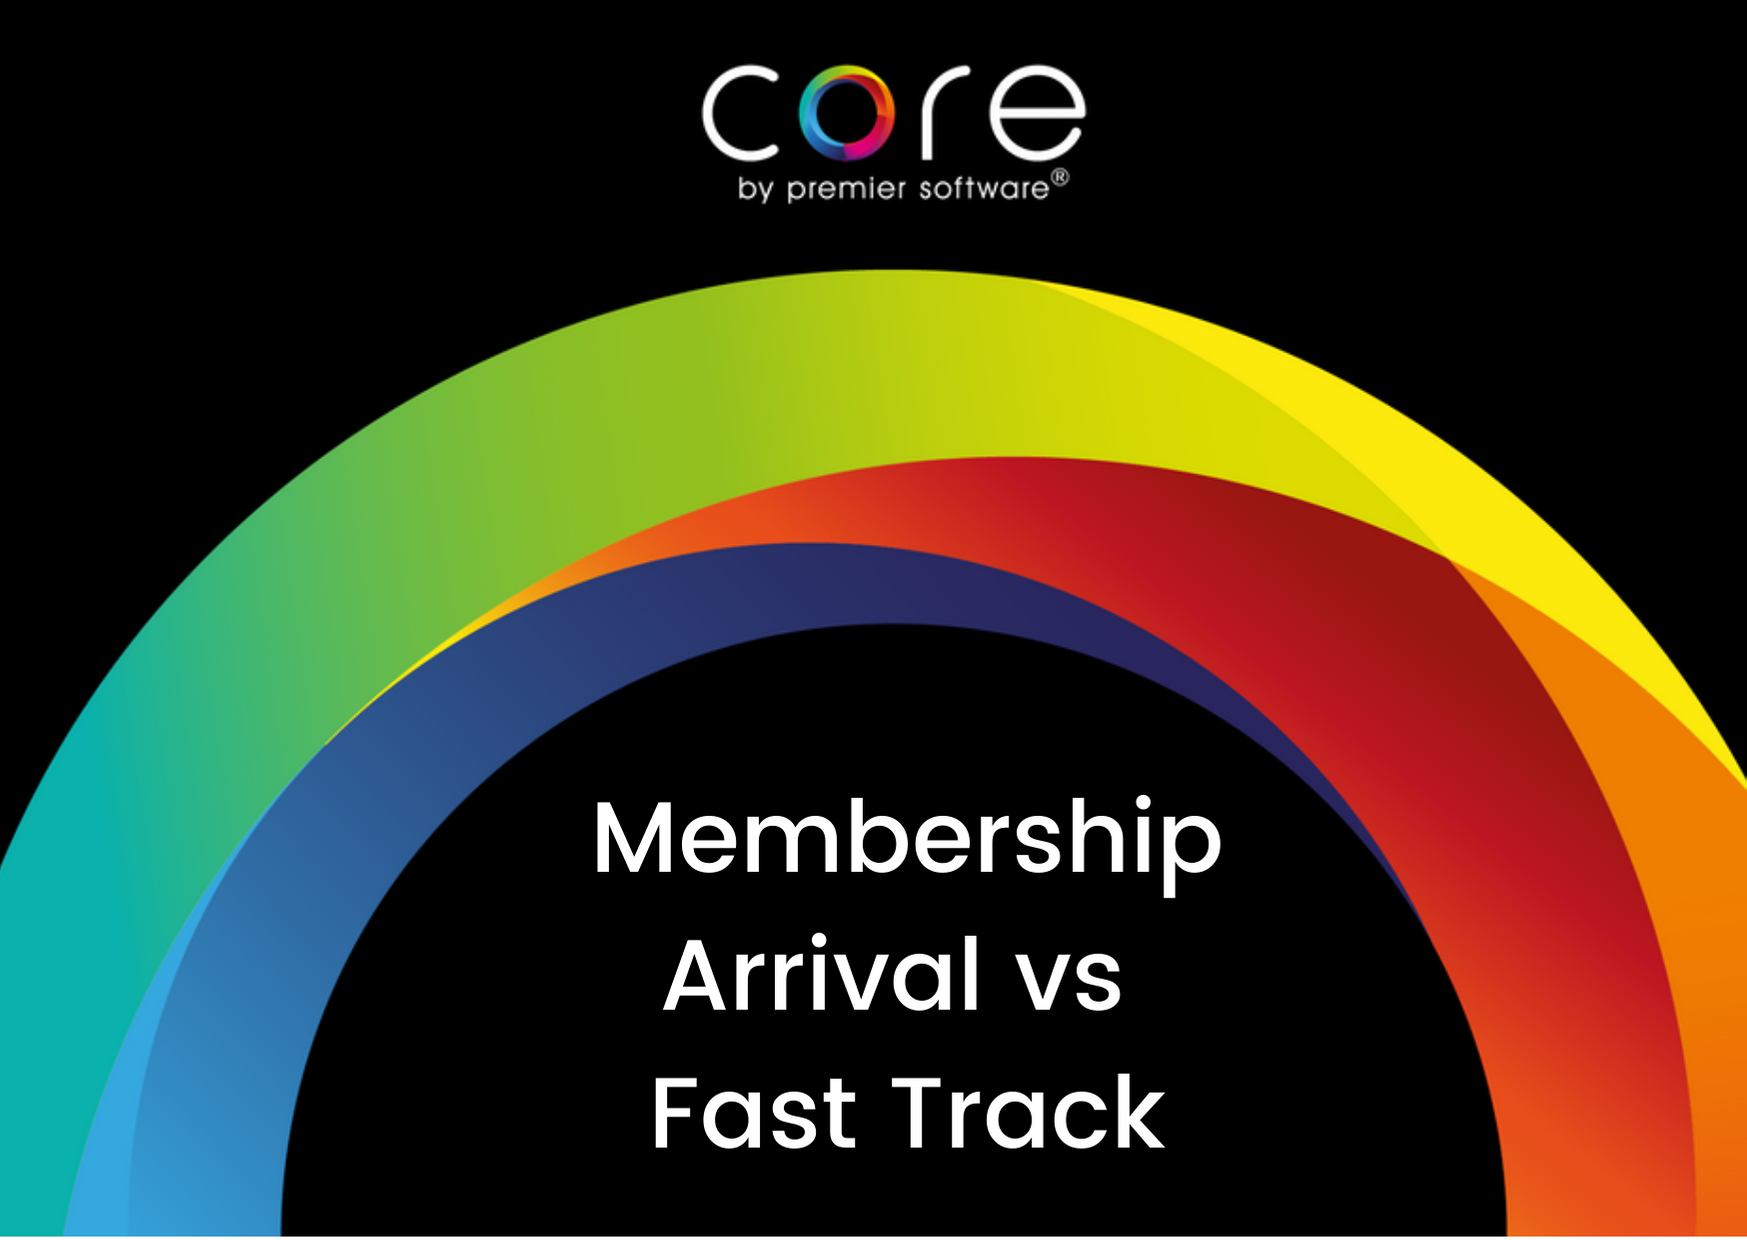 Did Your Know Core Membership Arrival vs Fast Track